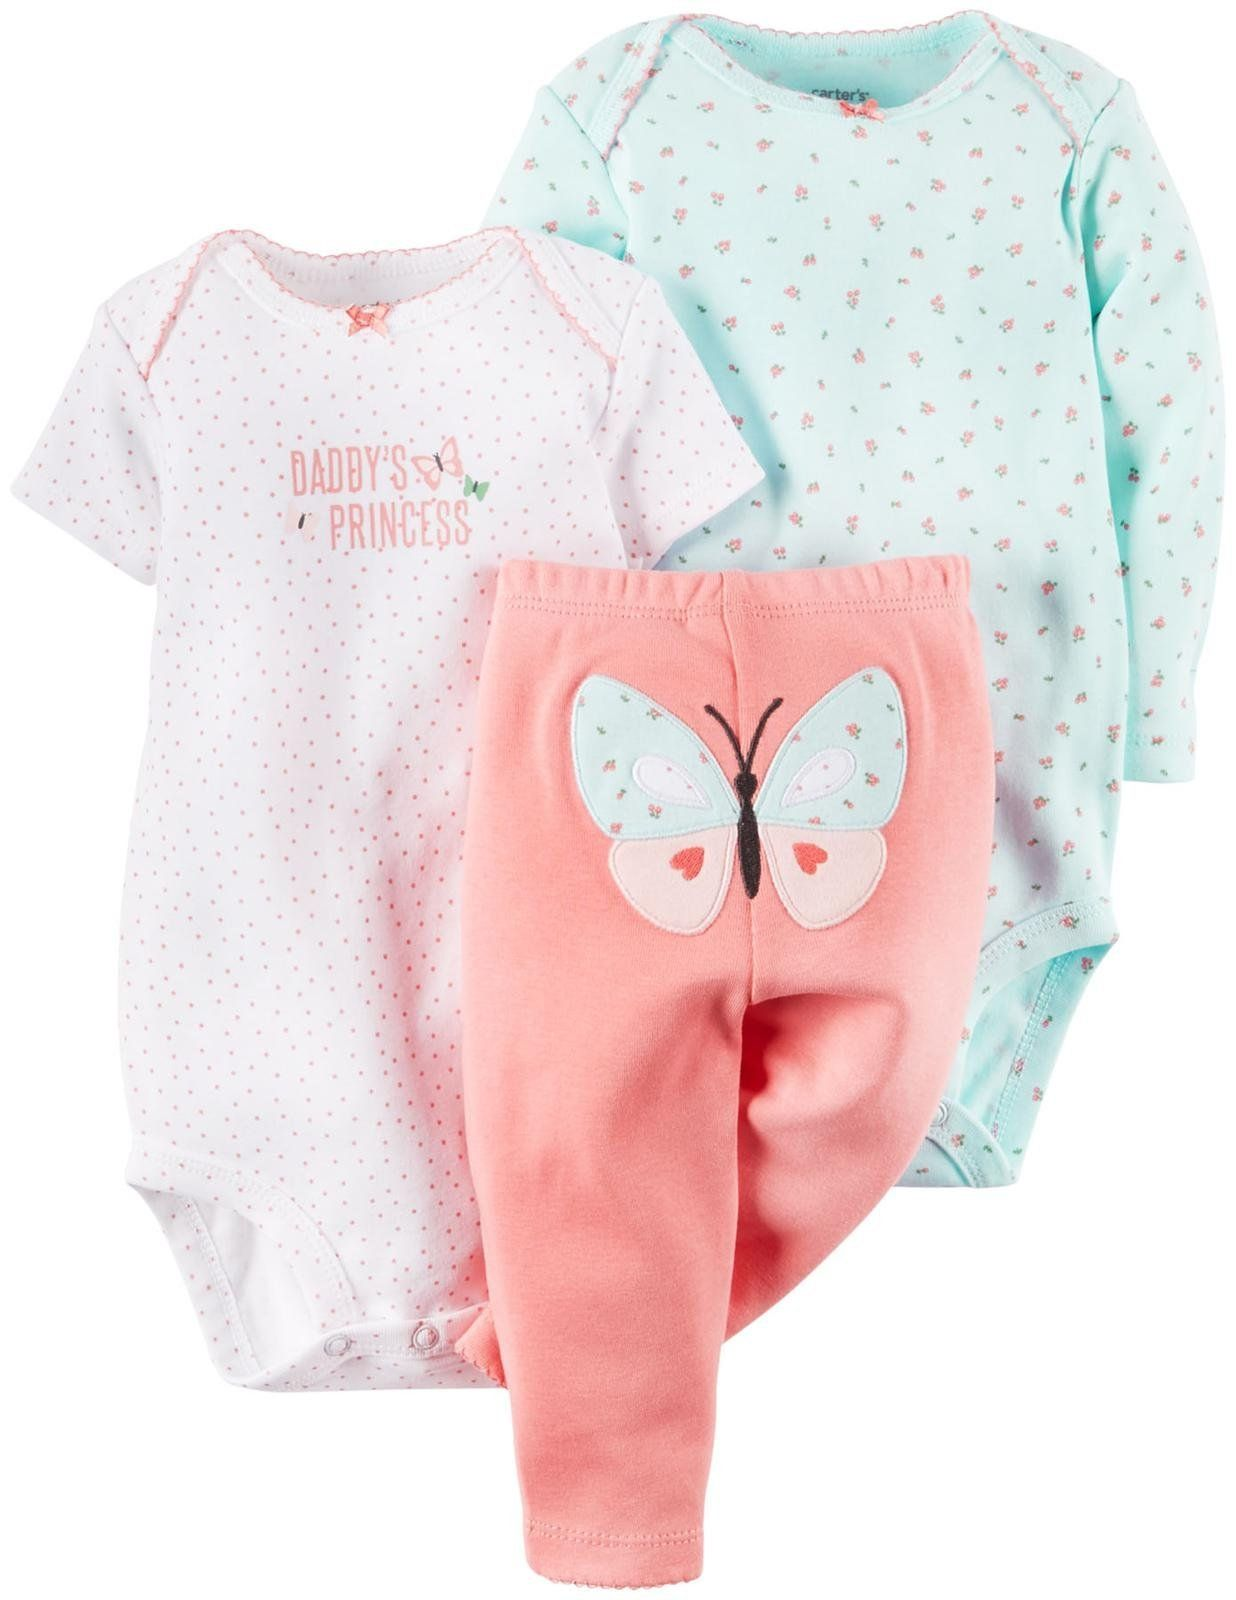 09abc6000a940 Carter s Baby Girls  3 Piece Take Me Away Set (Baby) - Butterfly - 3M